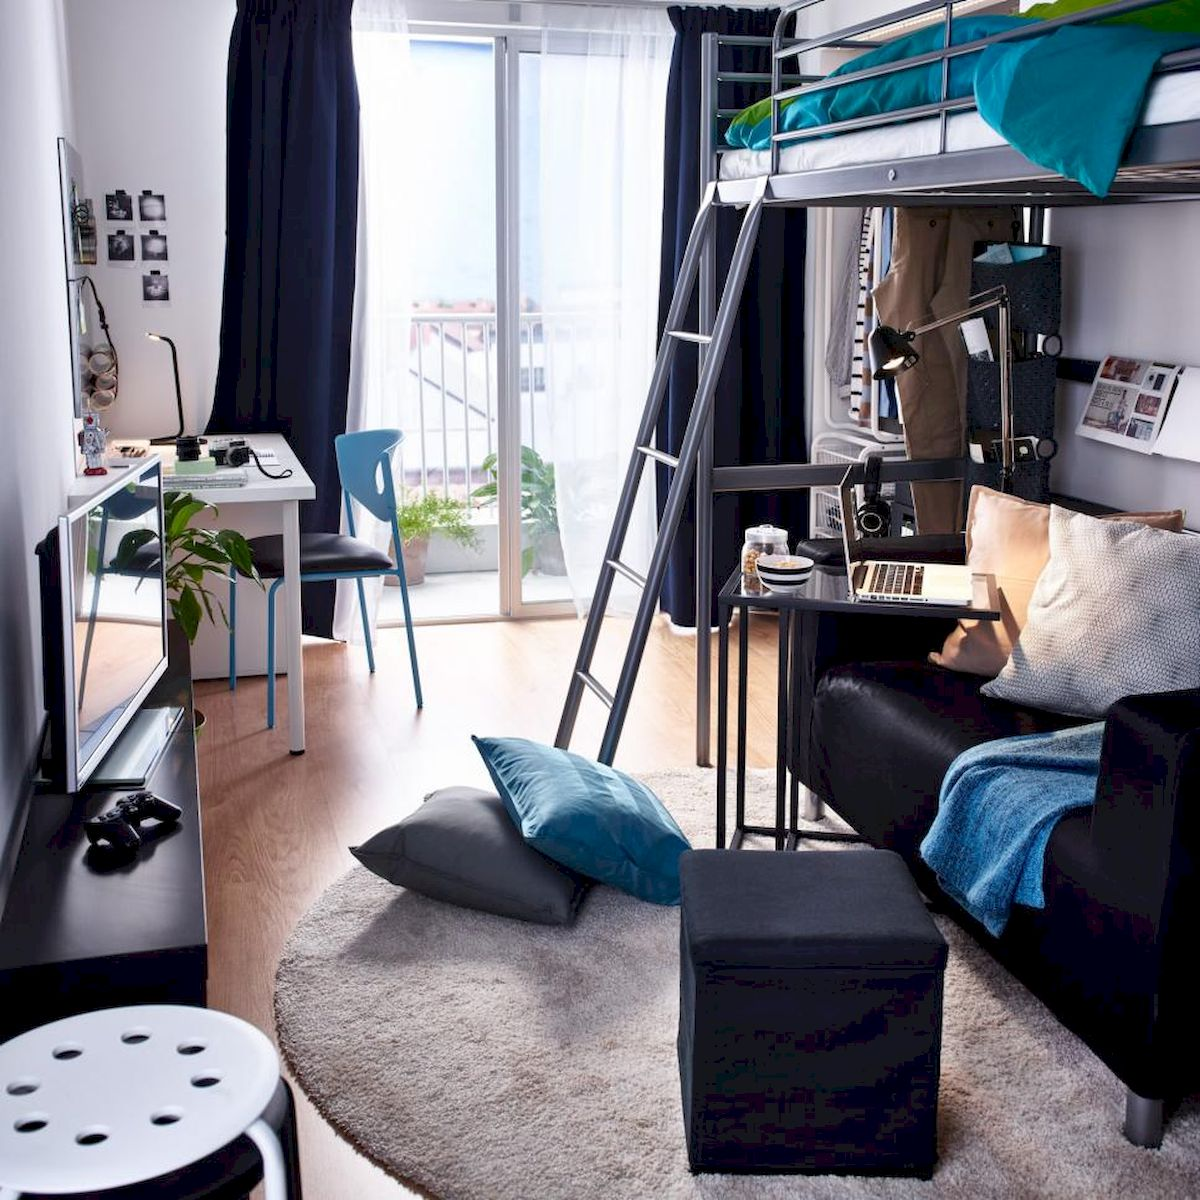 60 Gorgeous College Dorm Room Decorating Ideas And Makeover (2)